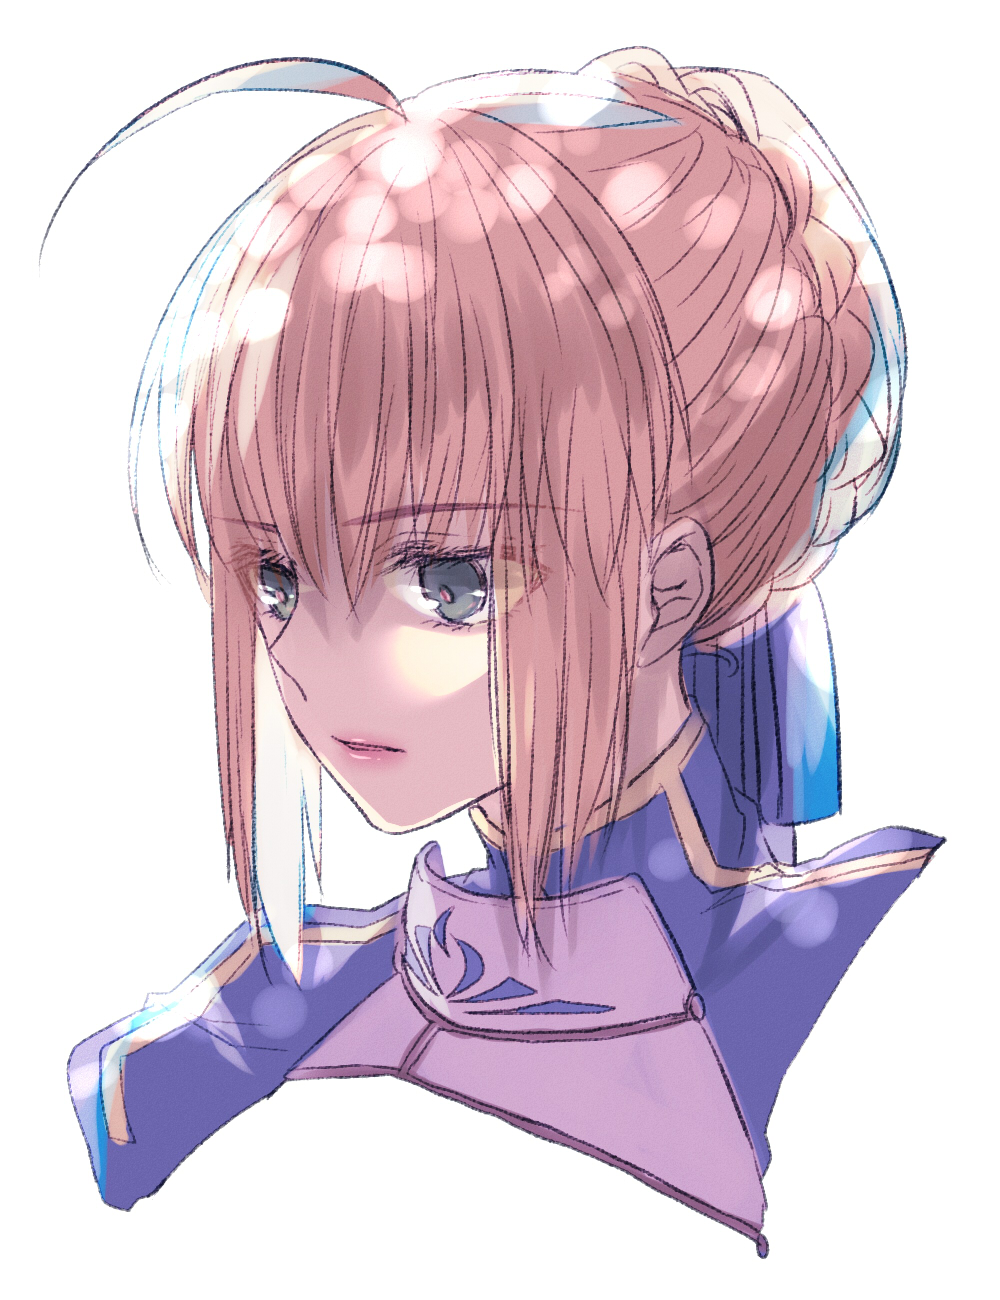 1girl ahoge artoria_pendragon_(all) bangs blonde_hair blue_ribbon braided_bun cropped_torso eyebrows_visible_through_hair fate/stay_night fate_(series) grey_eyes hair_between_eyes hair_ribbon highres parted_lips portrait ribbon ro96cu saber short_hair sidelocks simple_background solo white_background